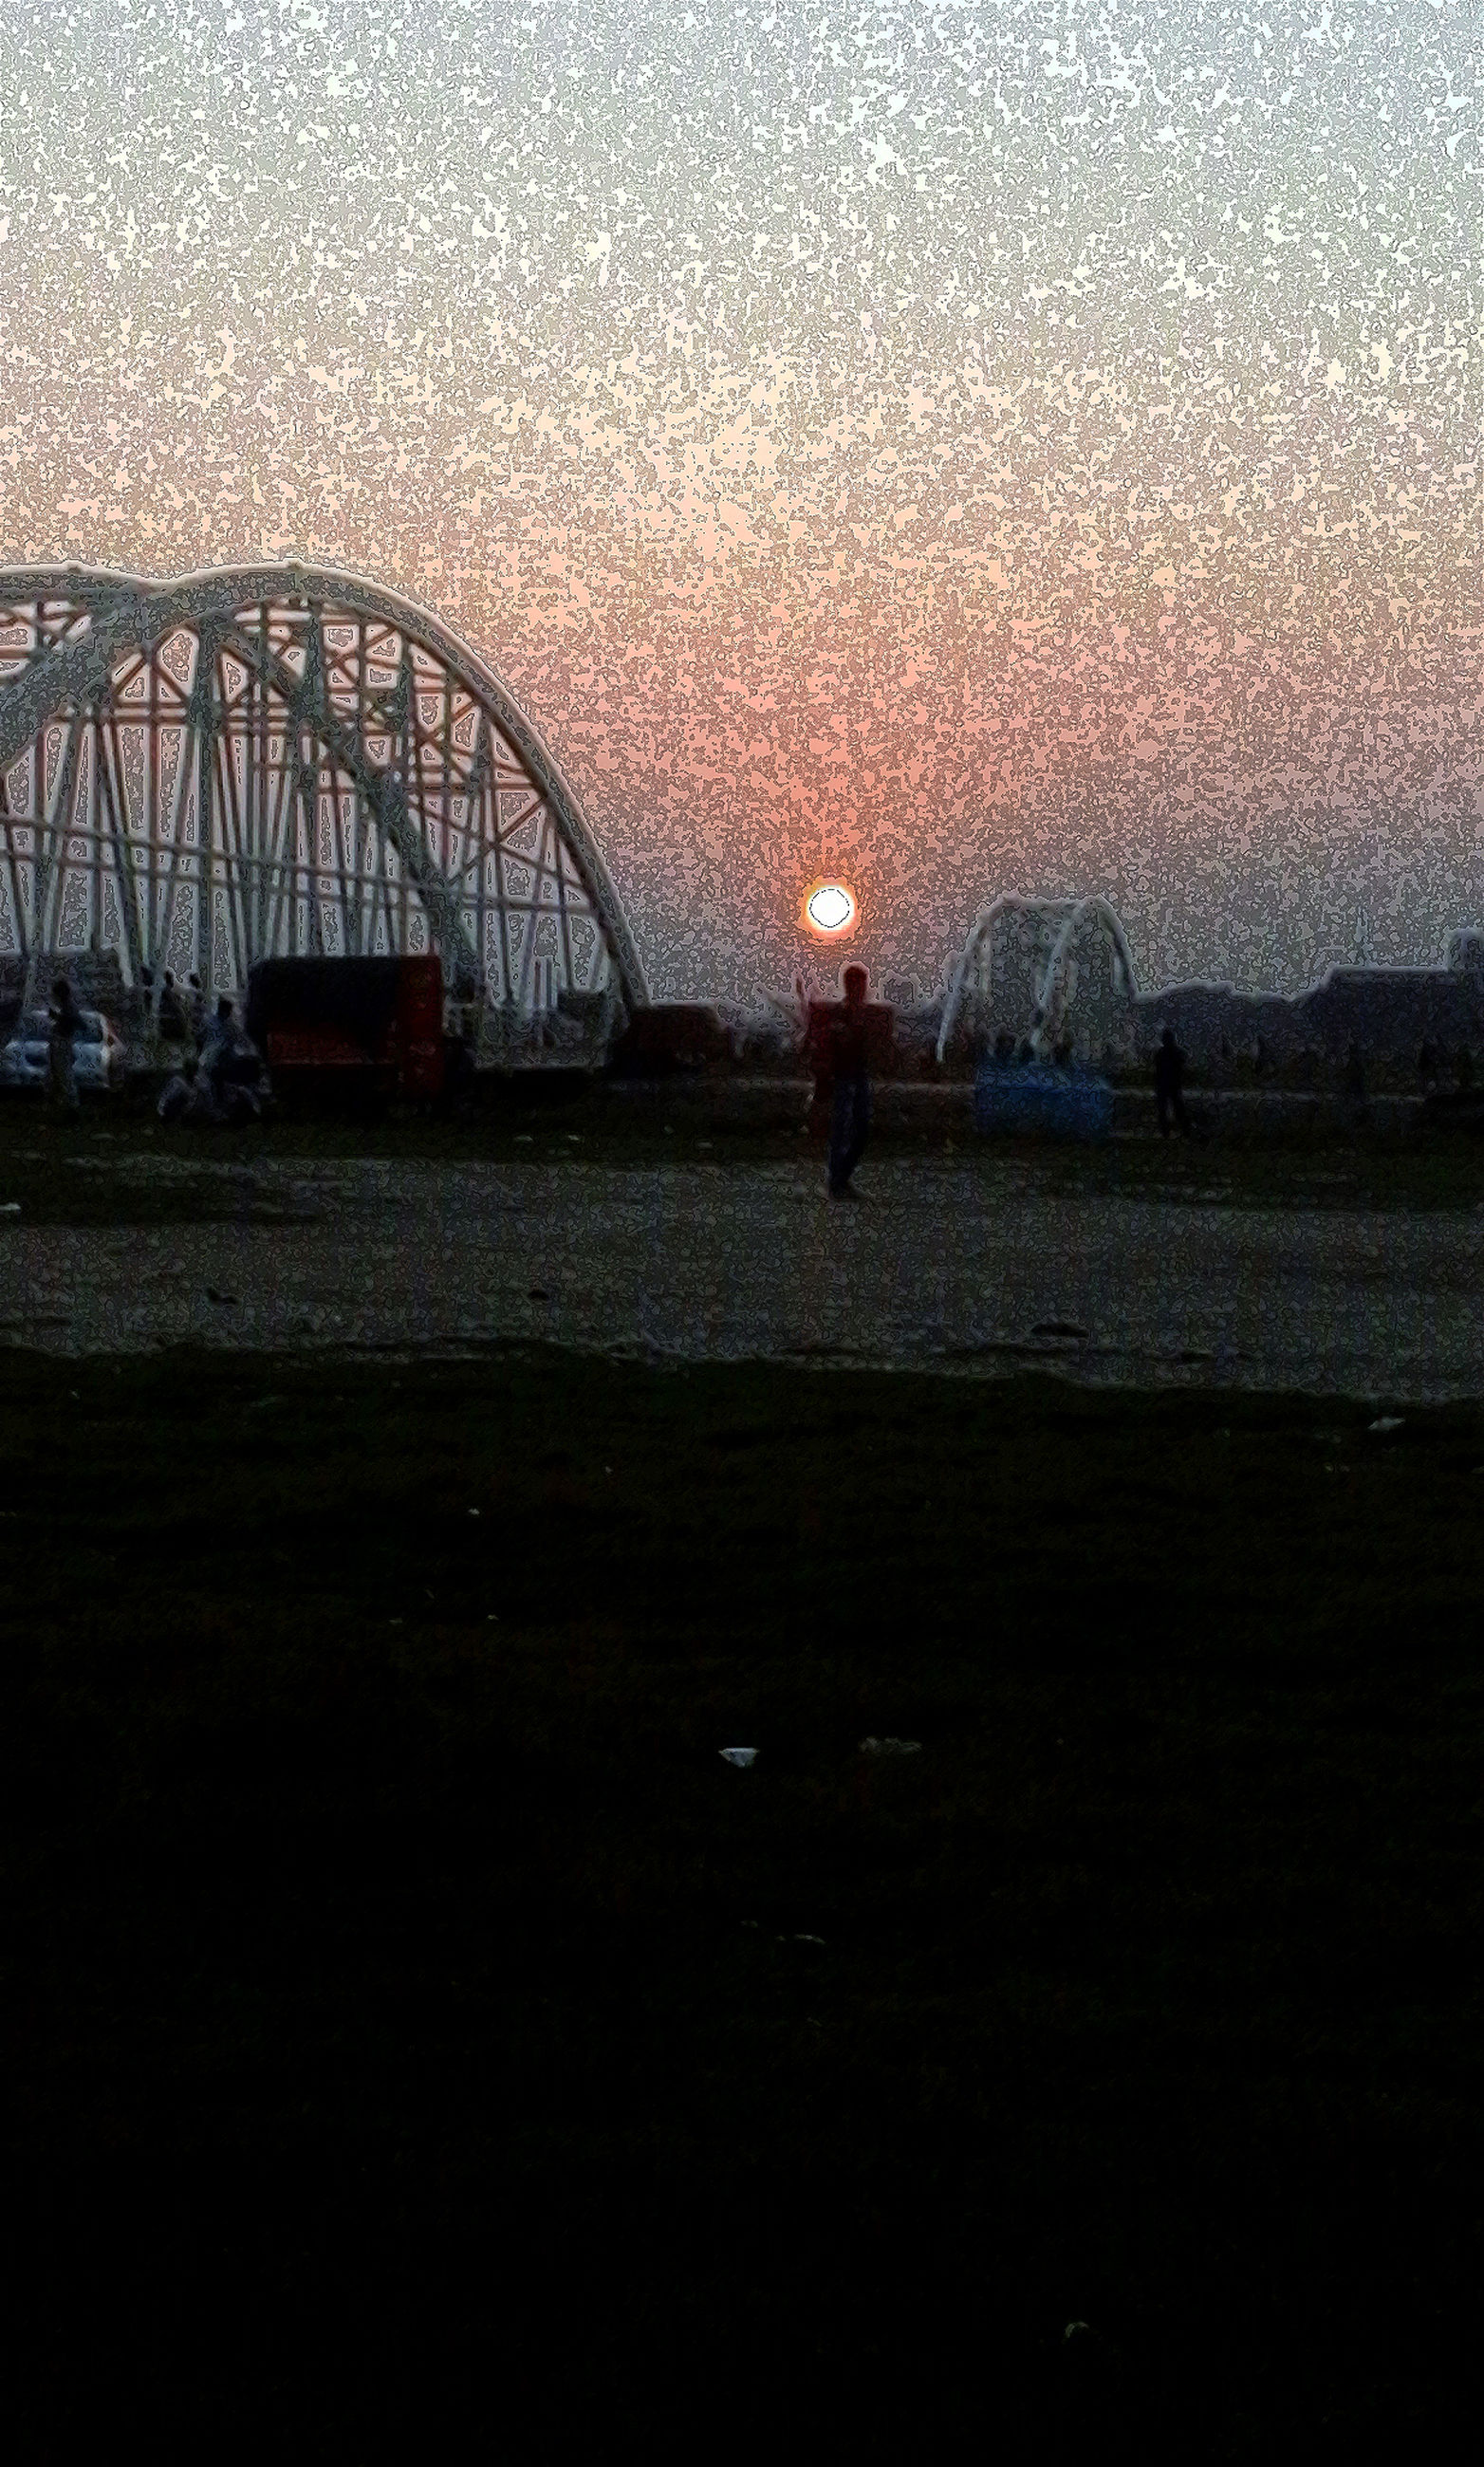 sunset, sky, bridge - man made structure, no people, outdoors, nature, scenics, beauty in nature, sun, day